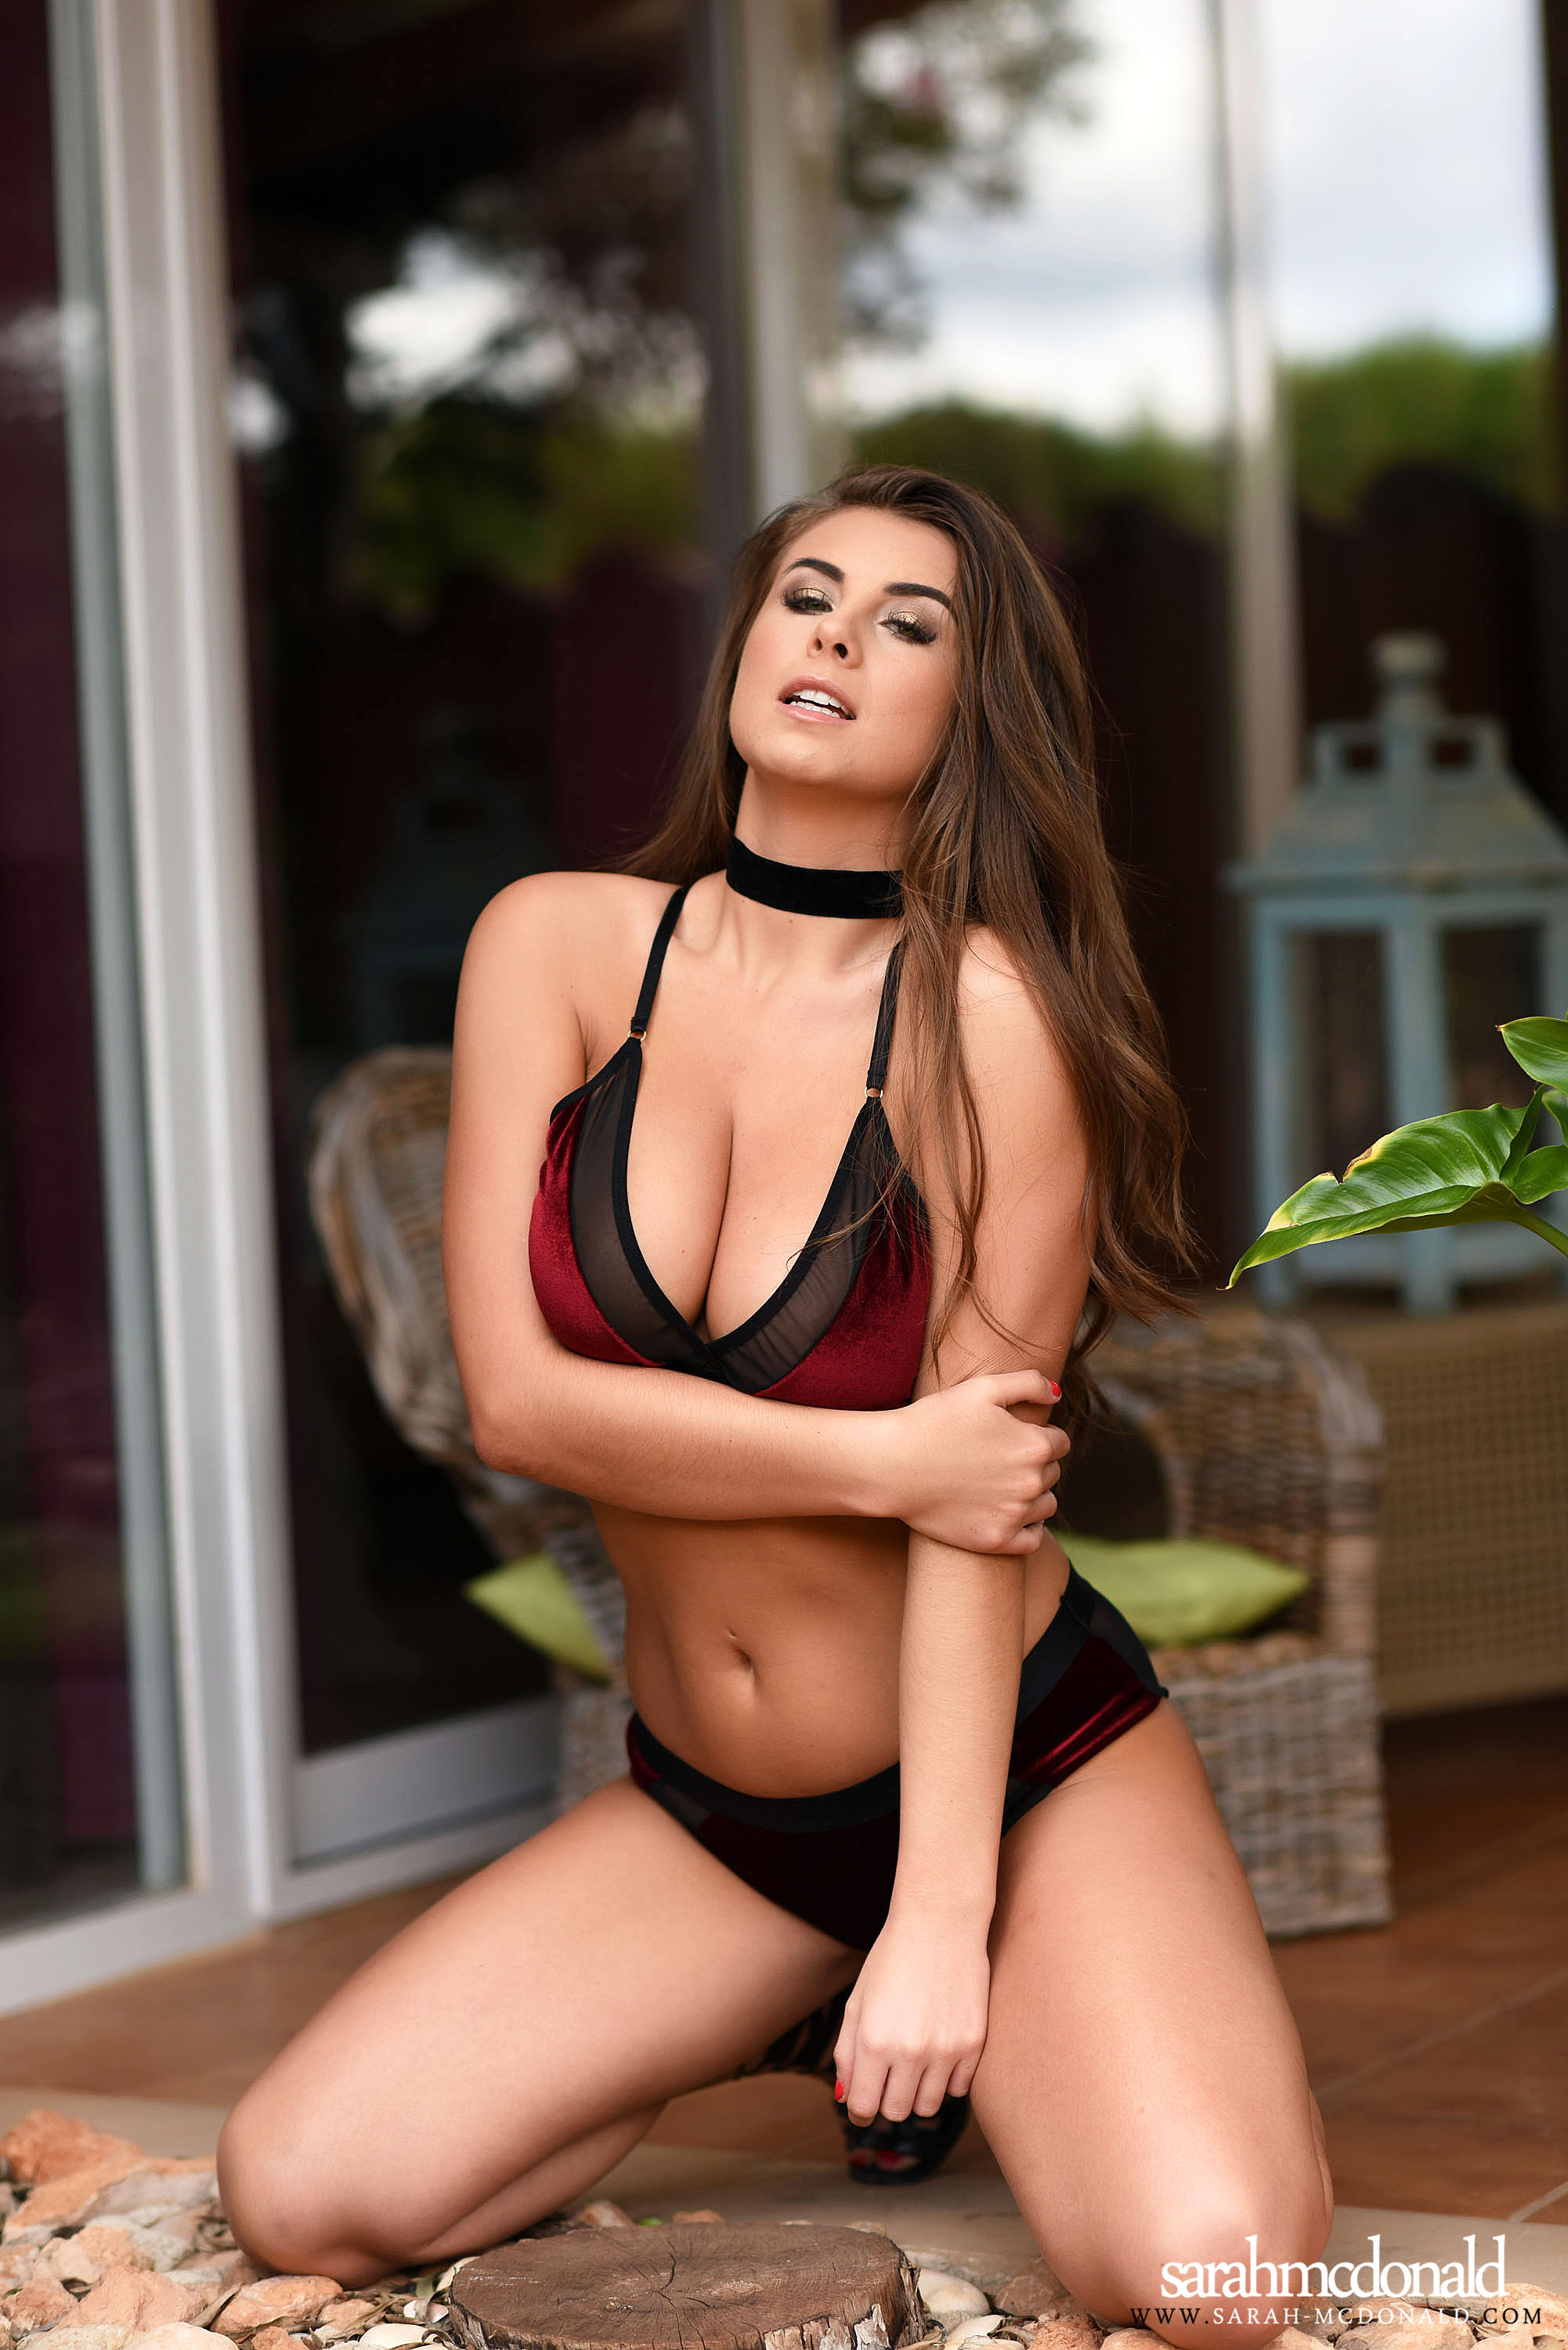 Sarah McDonald Big Boobs in a Red Velvet Bra